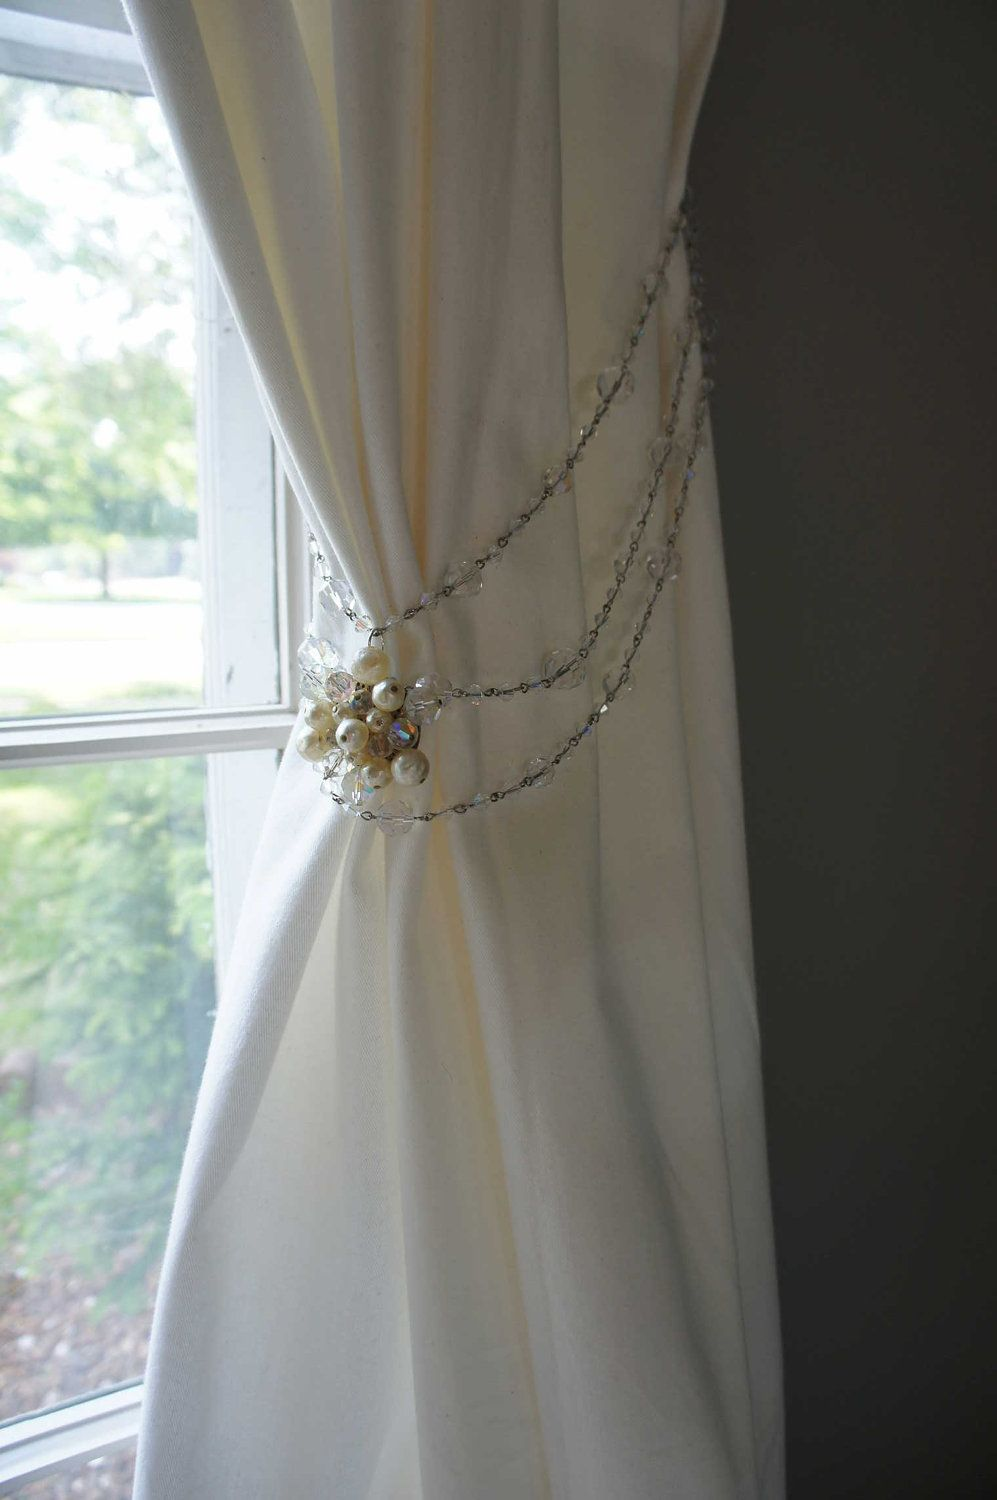 Curtain Tie Back Vintage Crystal Beads Pearls Sparkly